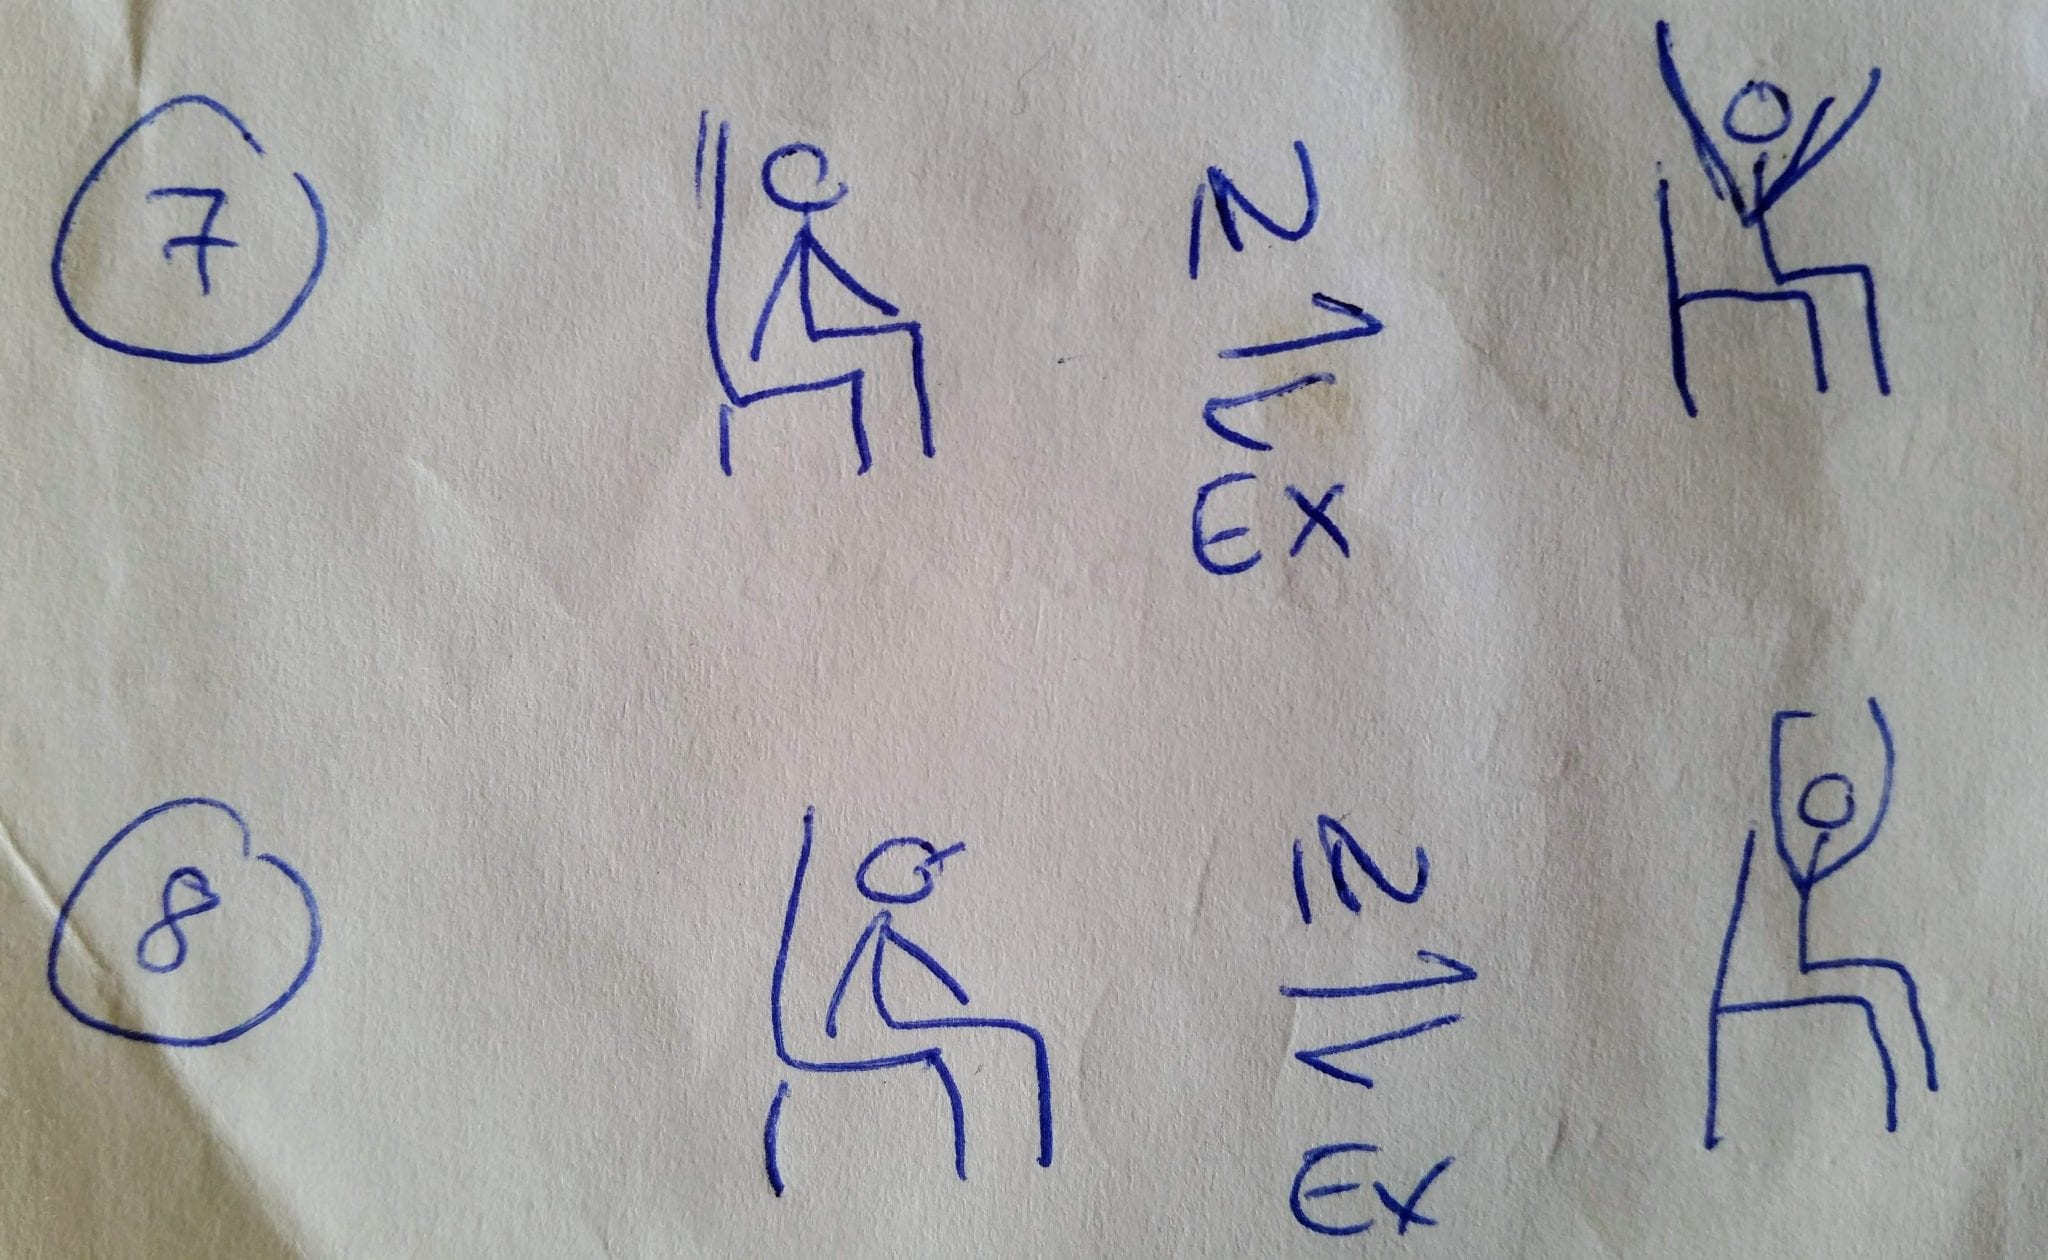 Stick person sketches showing 2 yoga seated exercises